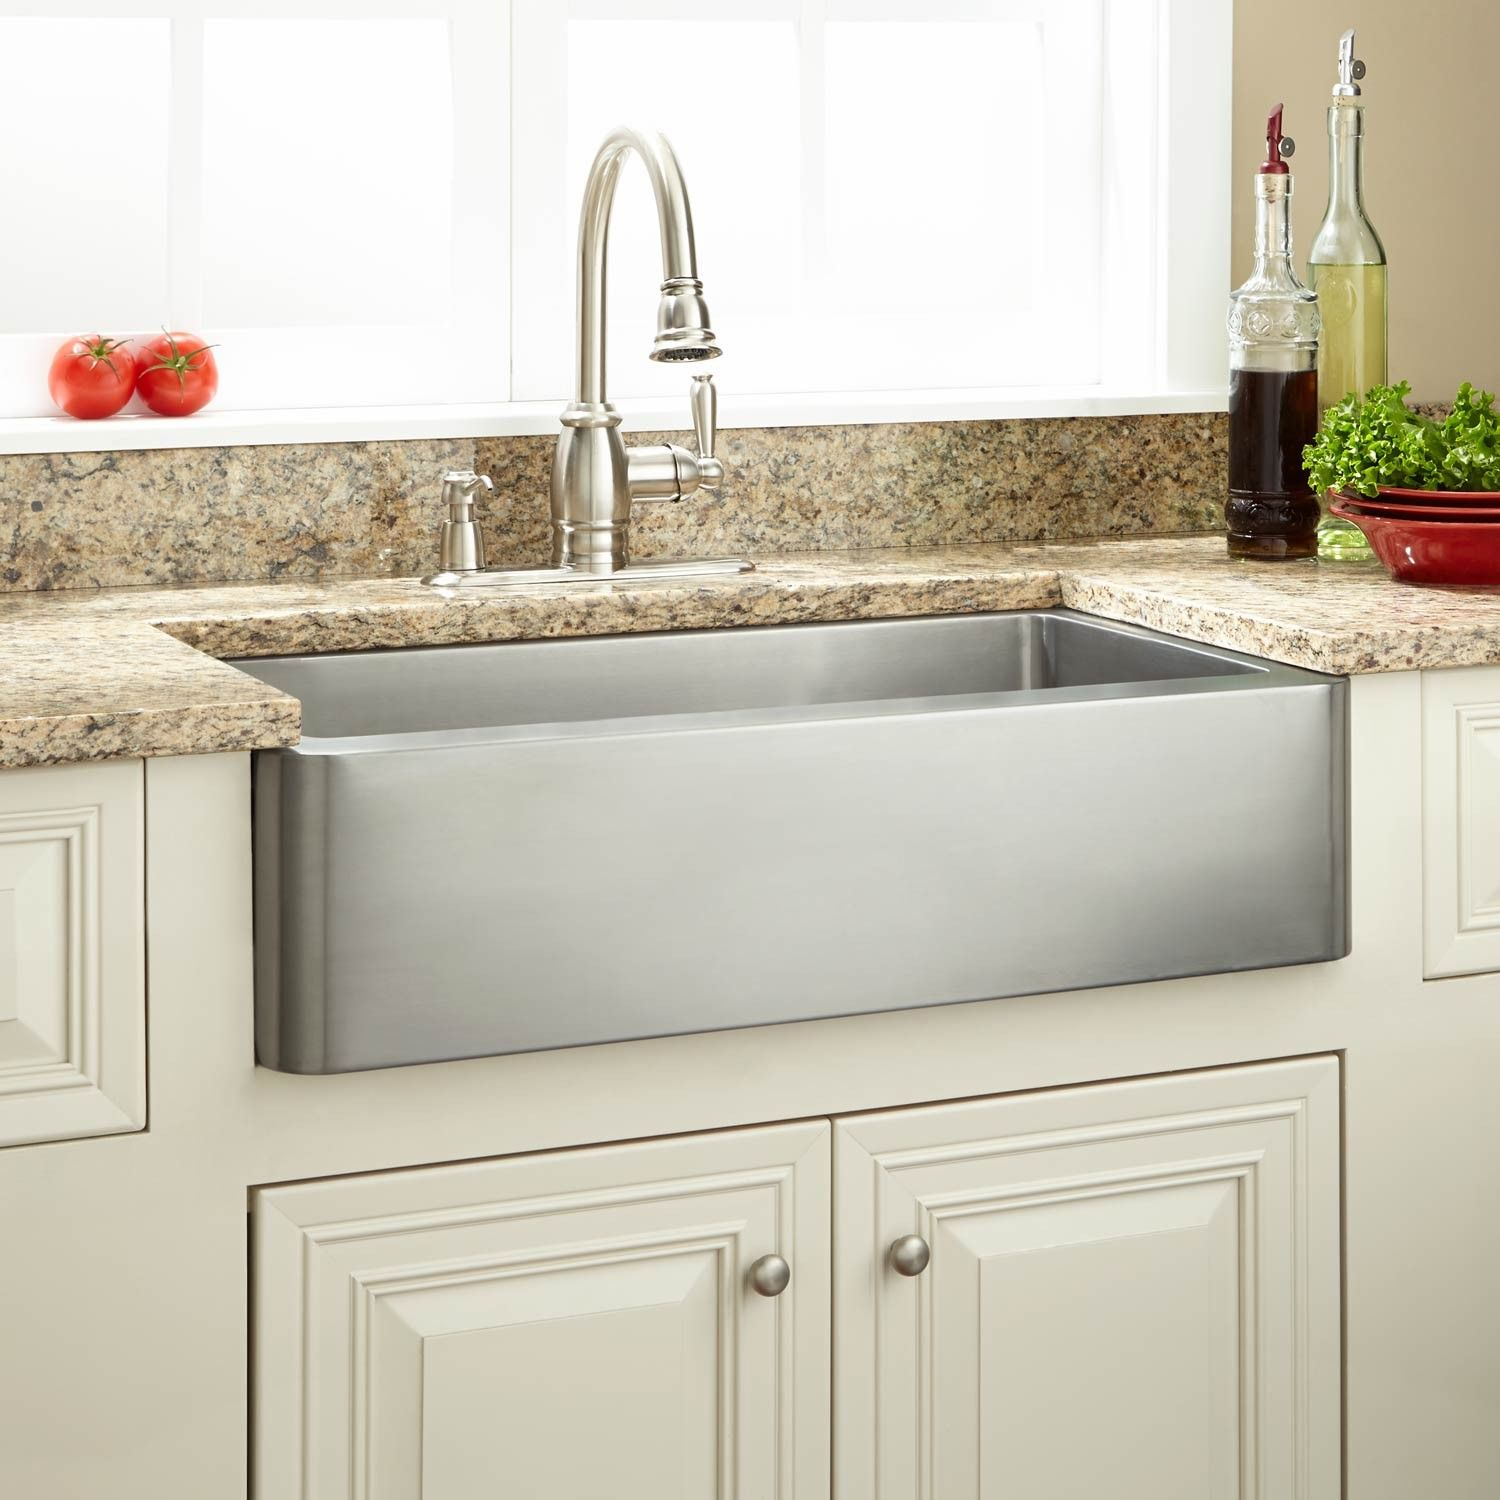 30 Hazelton Stainless Steel Retrofit Farmhouse Sink Stainless